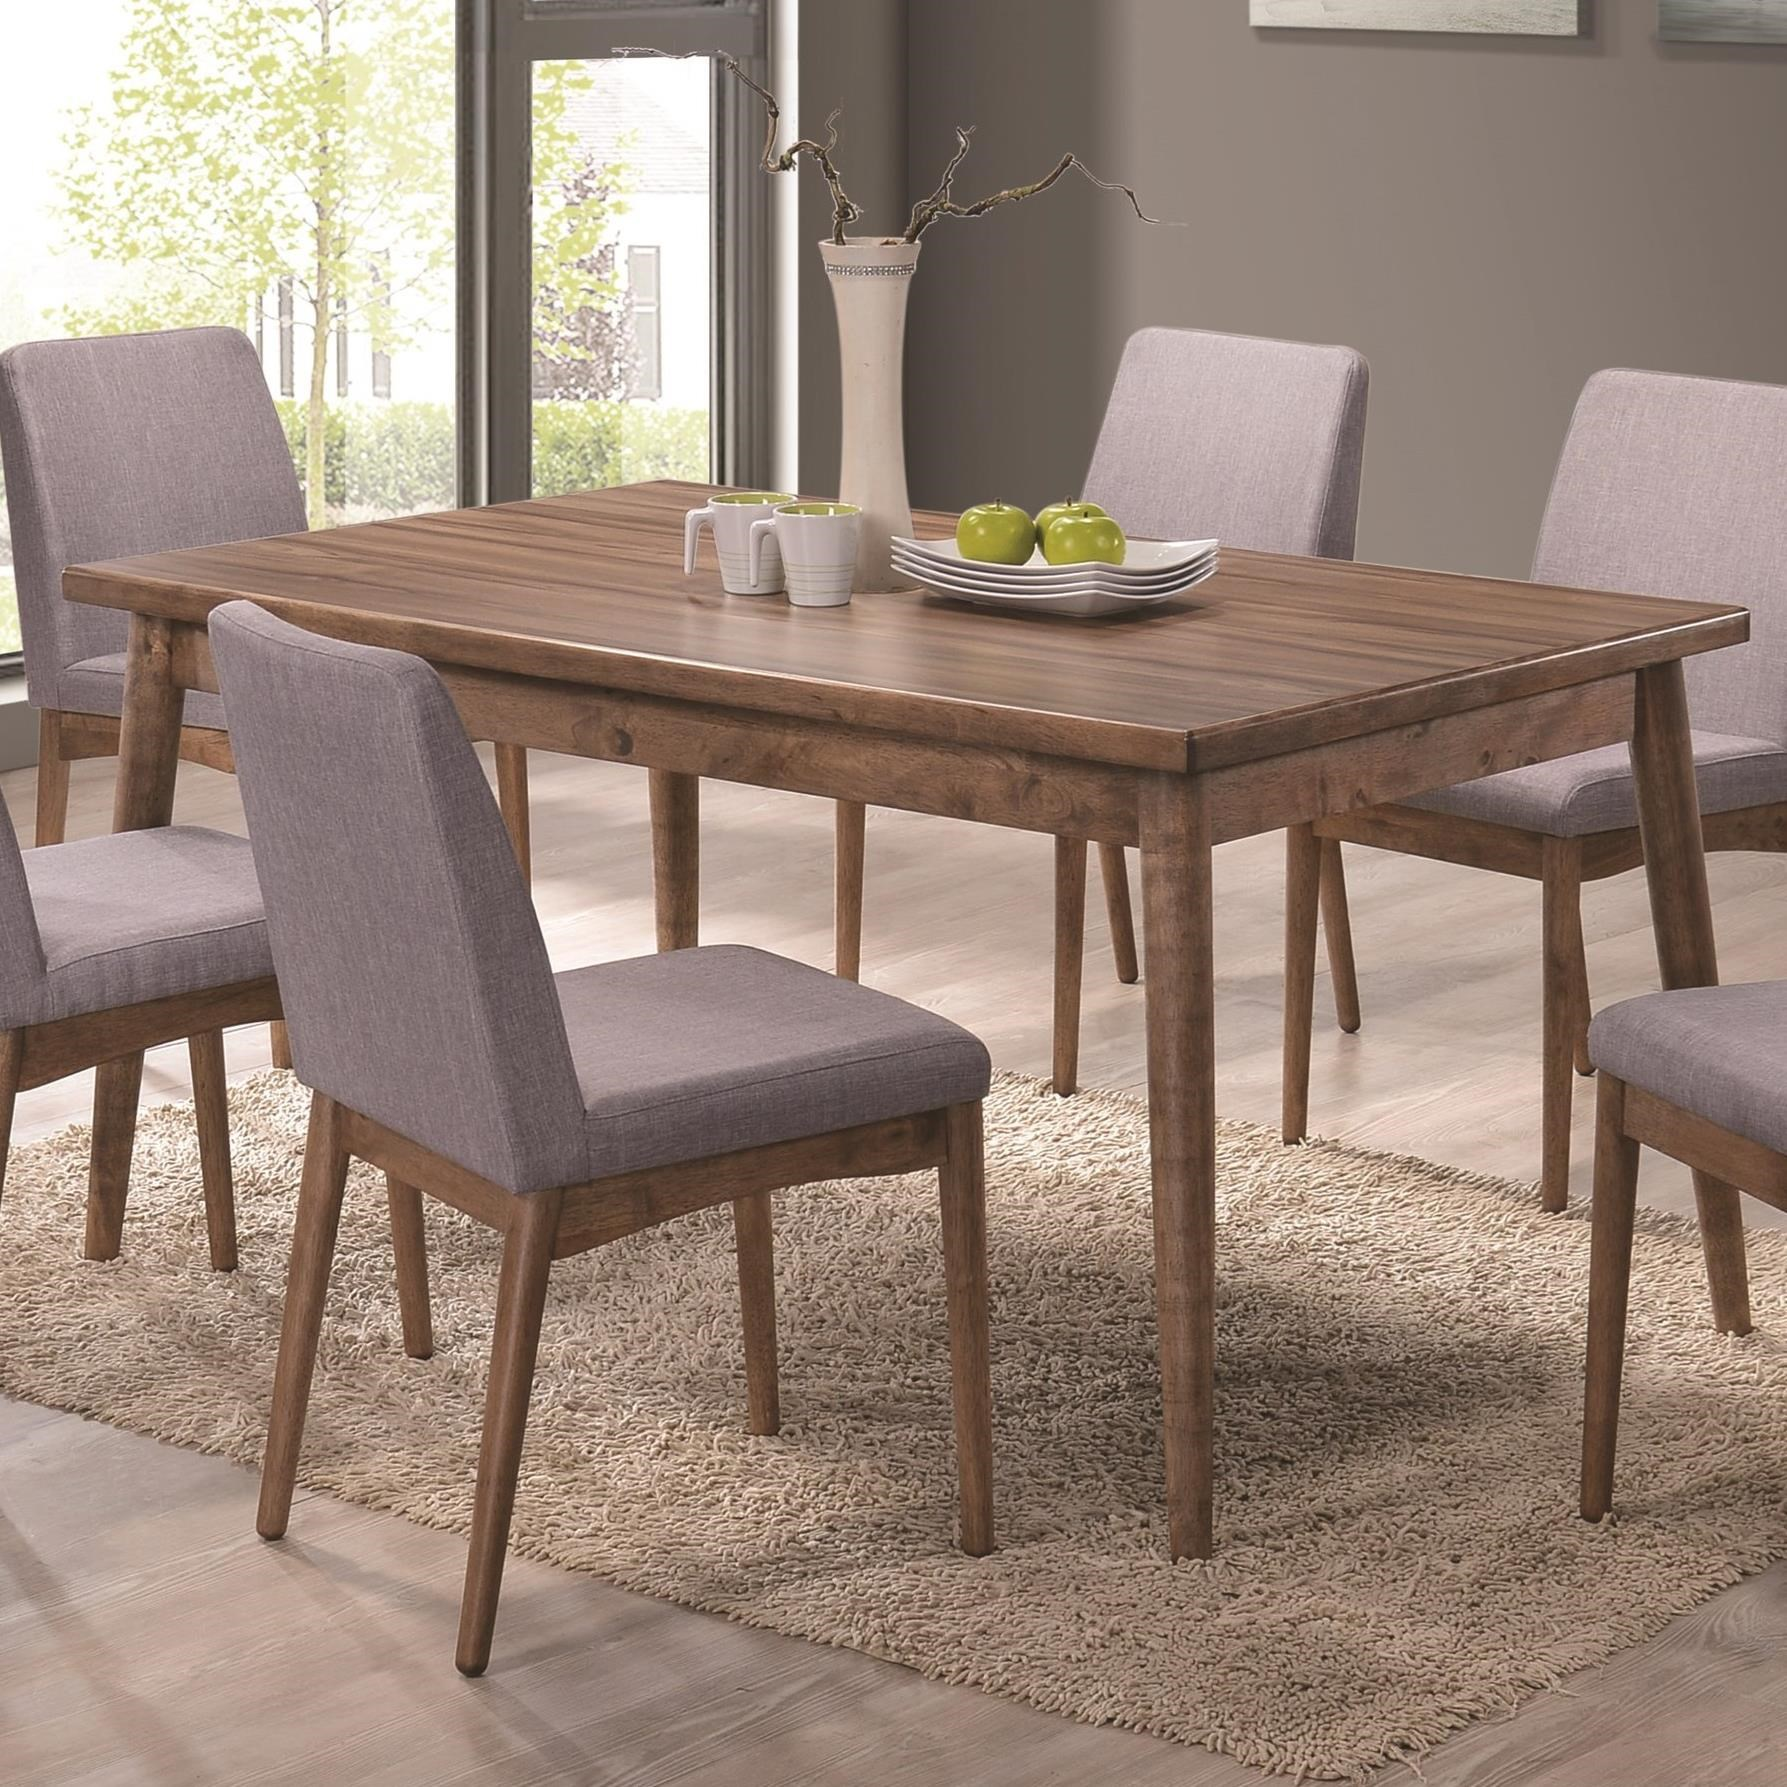 The pasquil mid century modern dining table